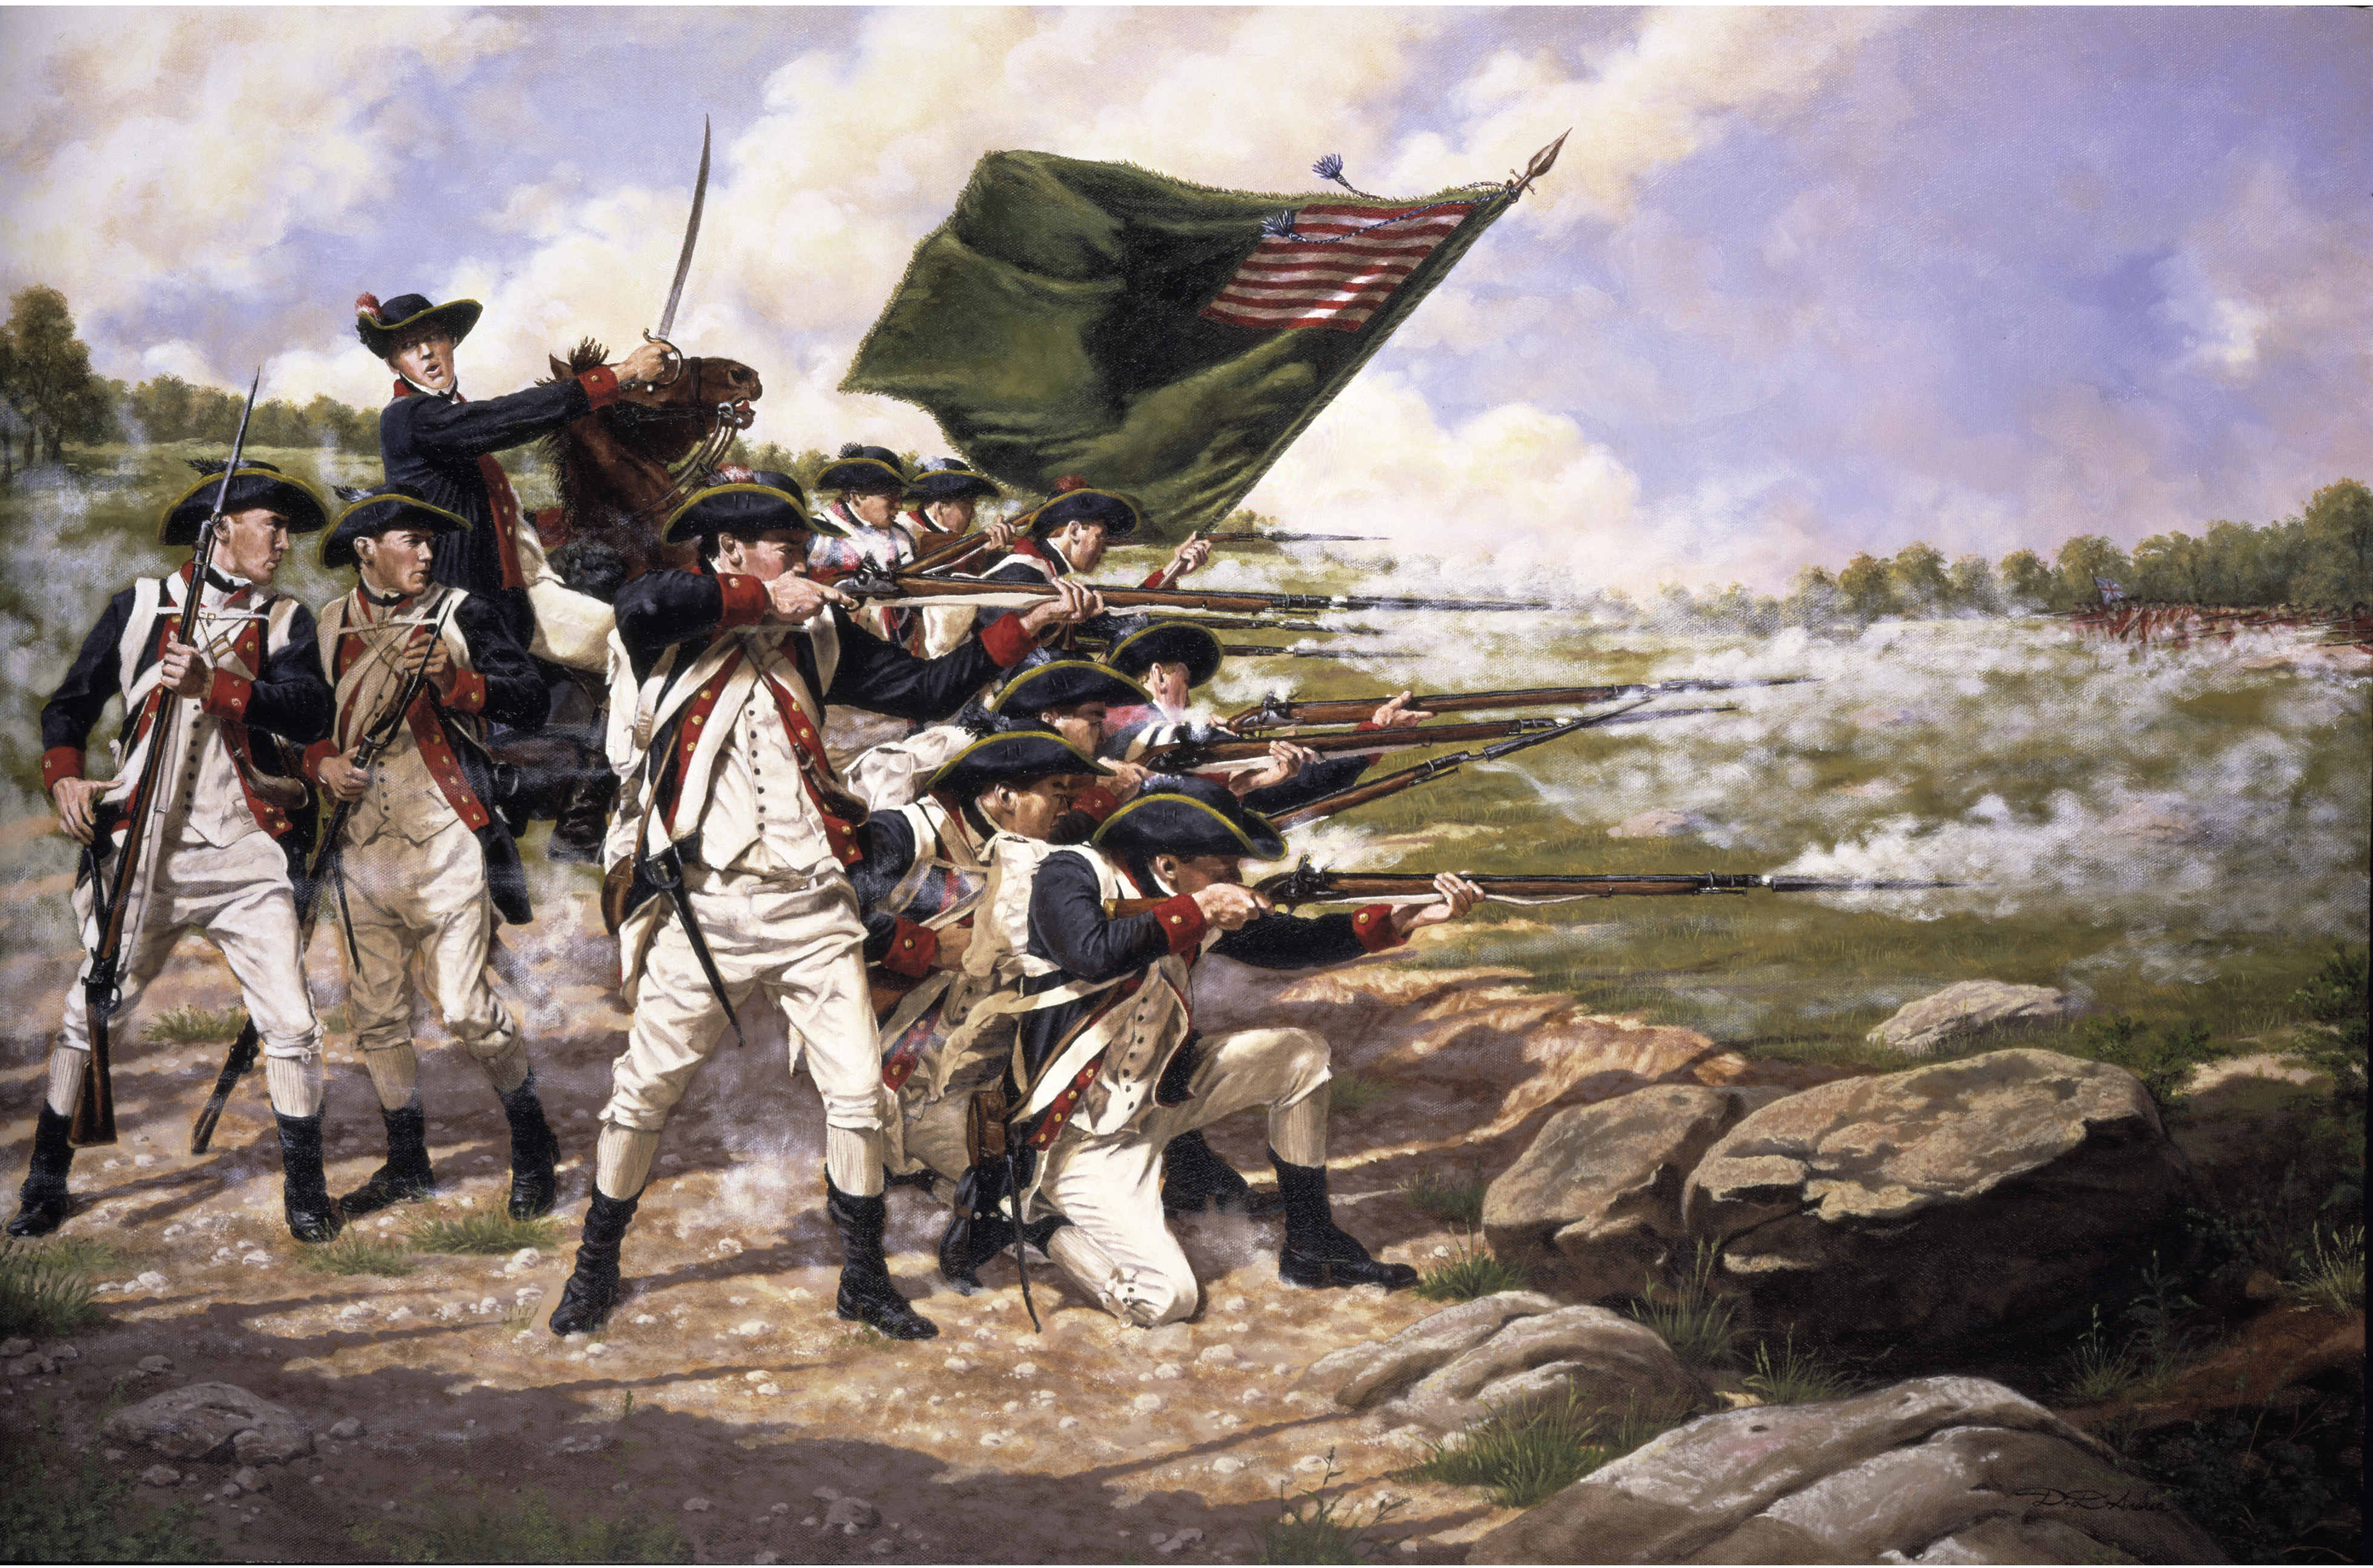 how did the americans sustain the revolution between 1776 and 1778